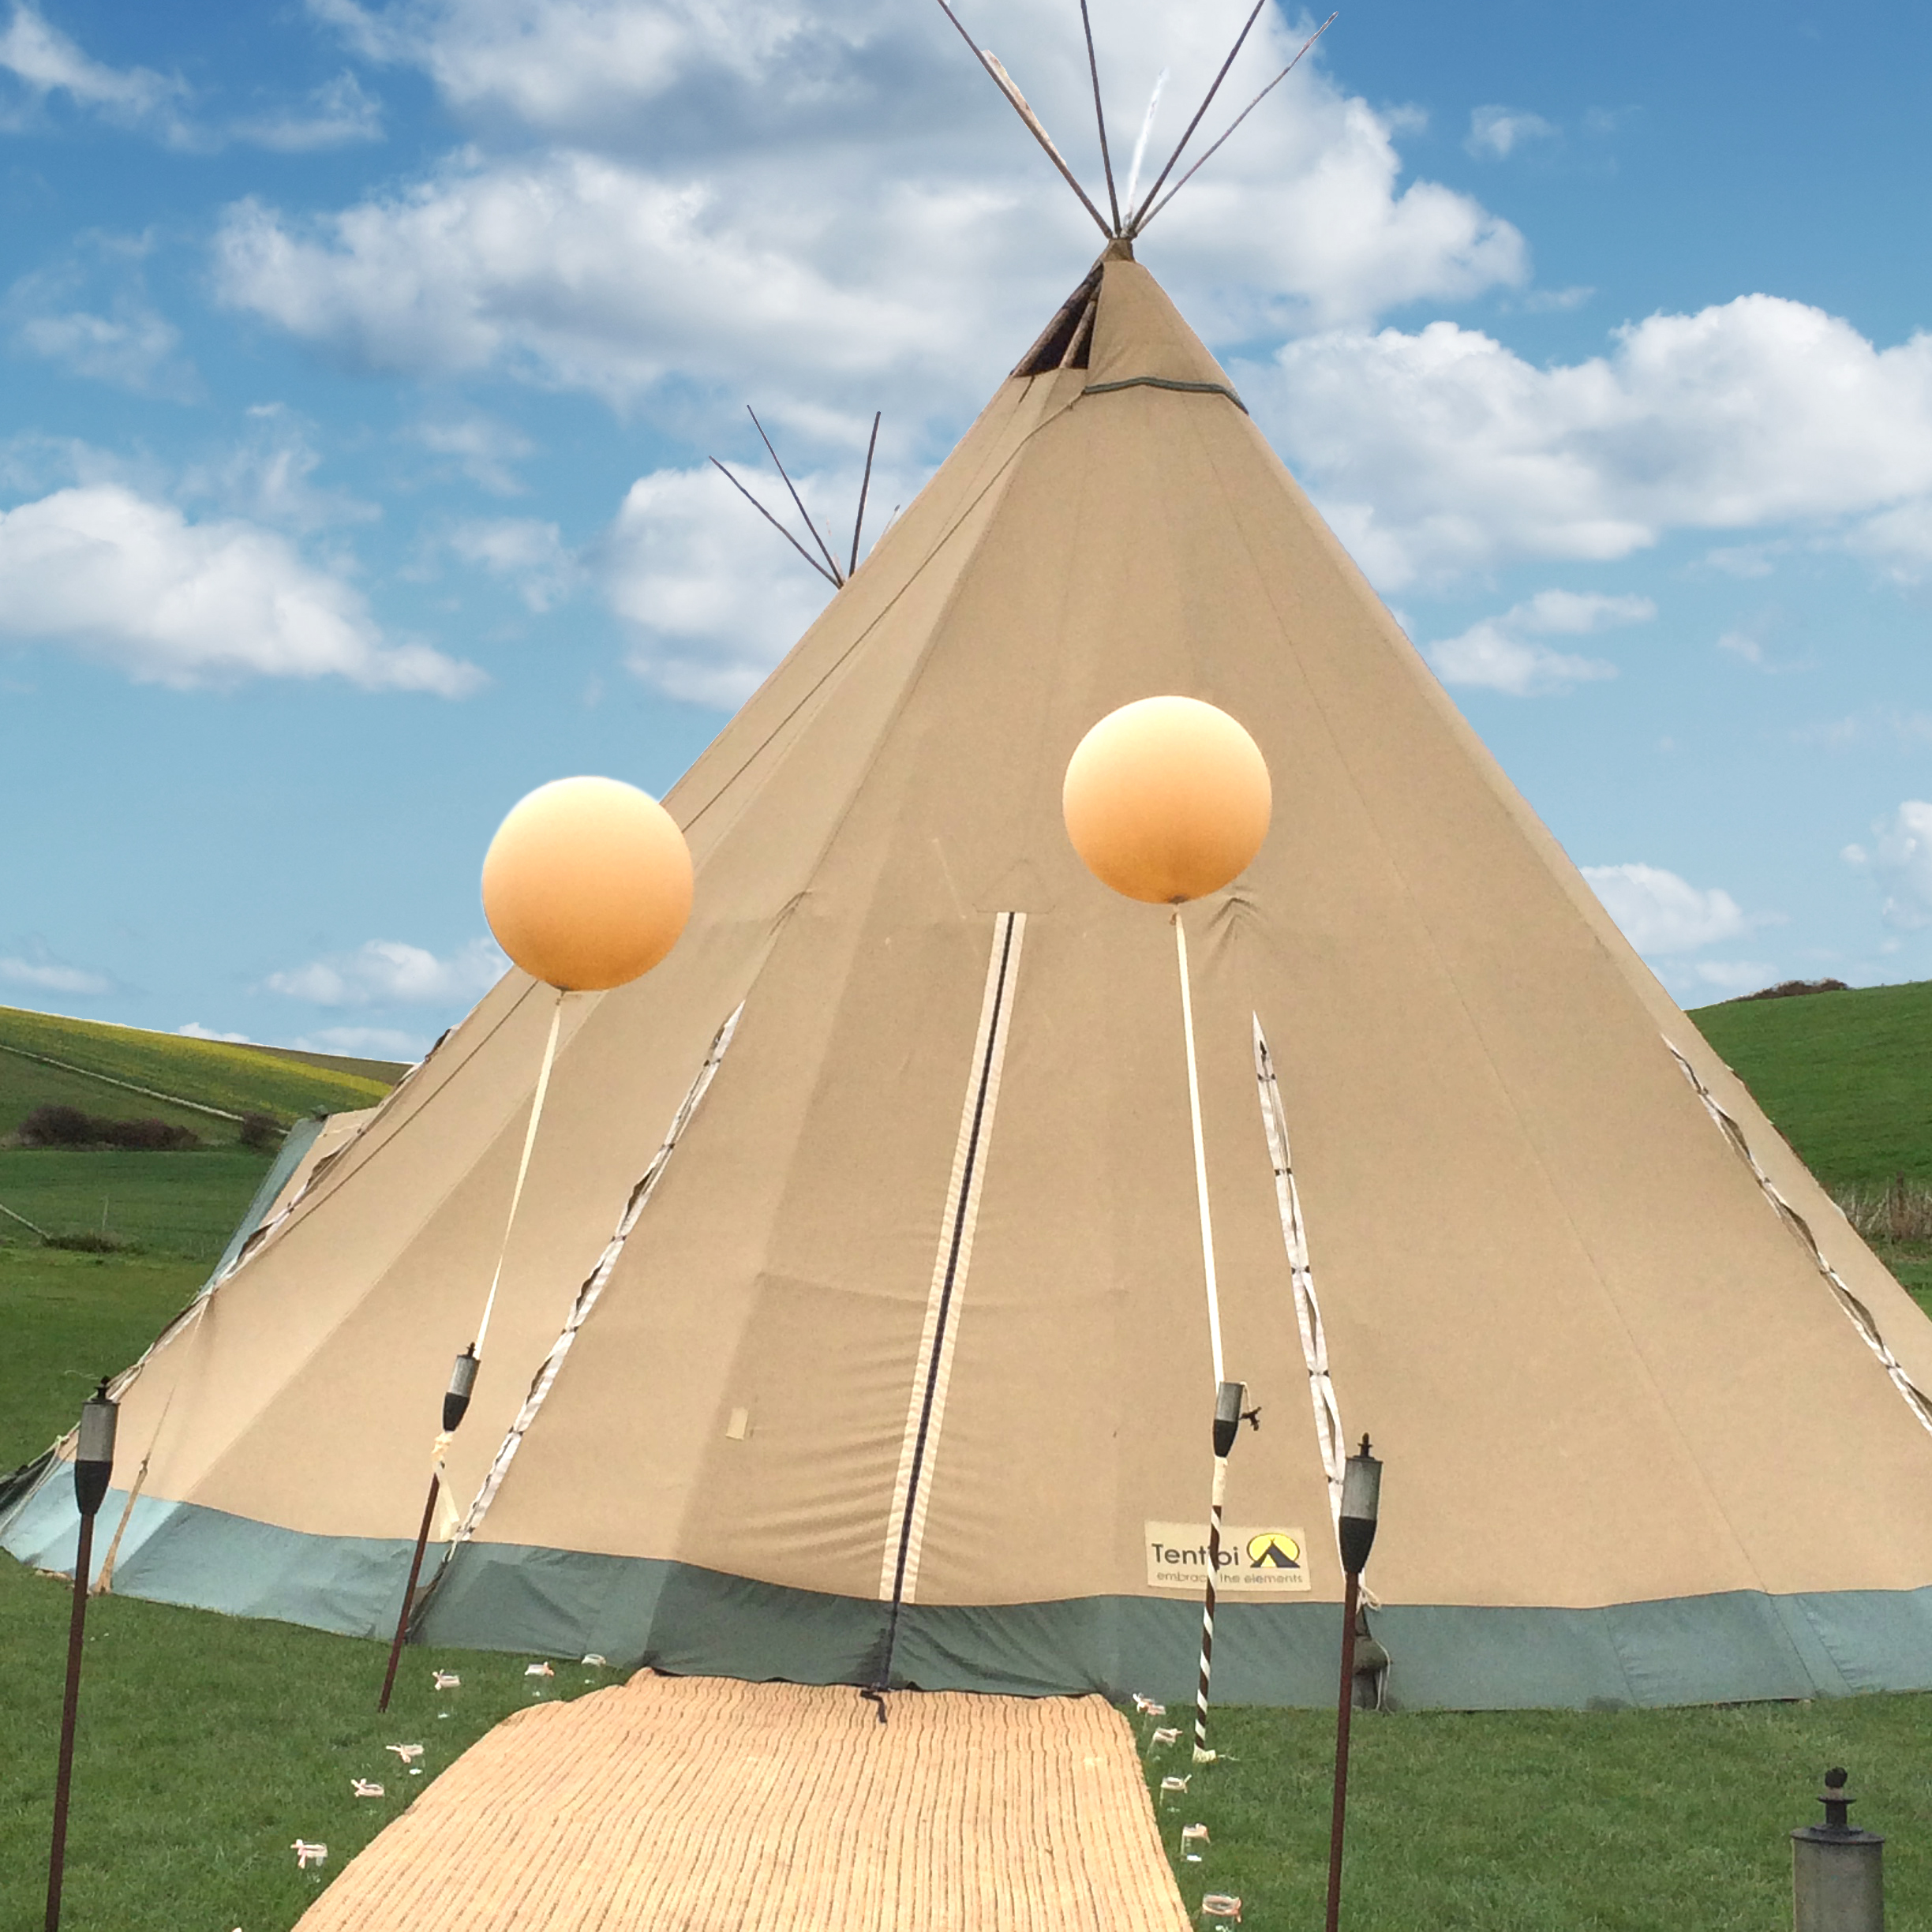 giant-balloons-for-teepee-festival-wedding.jpg